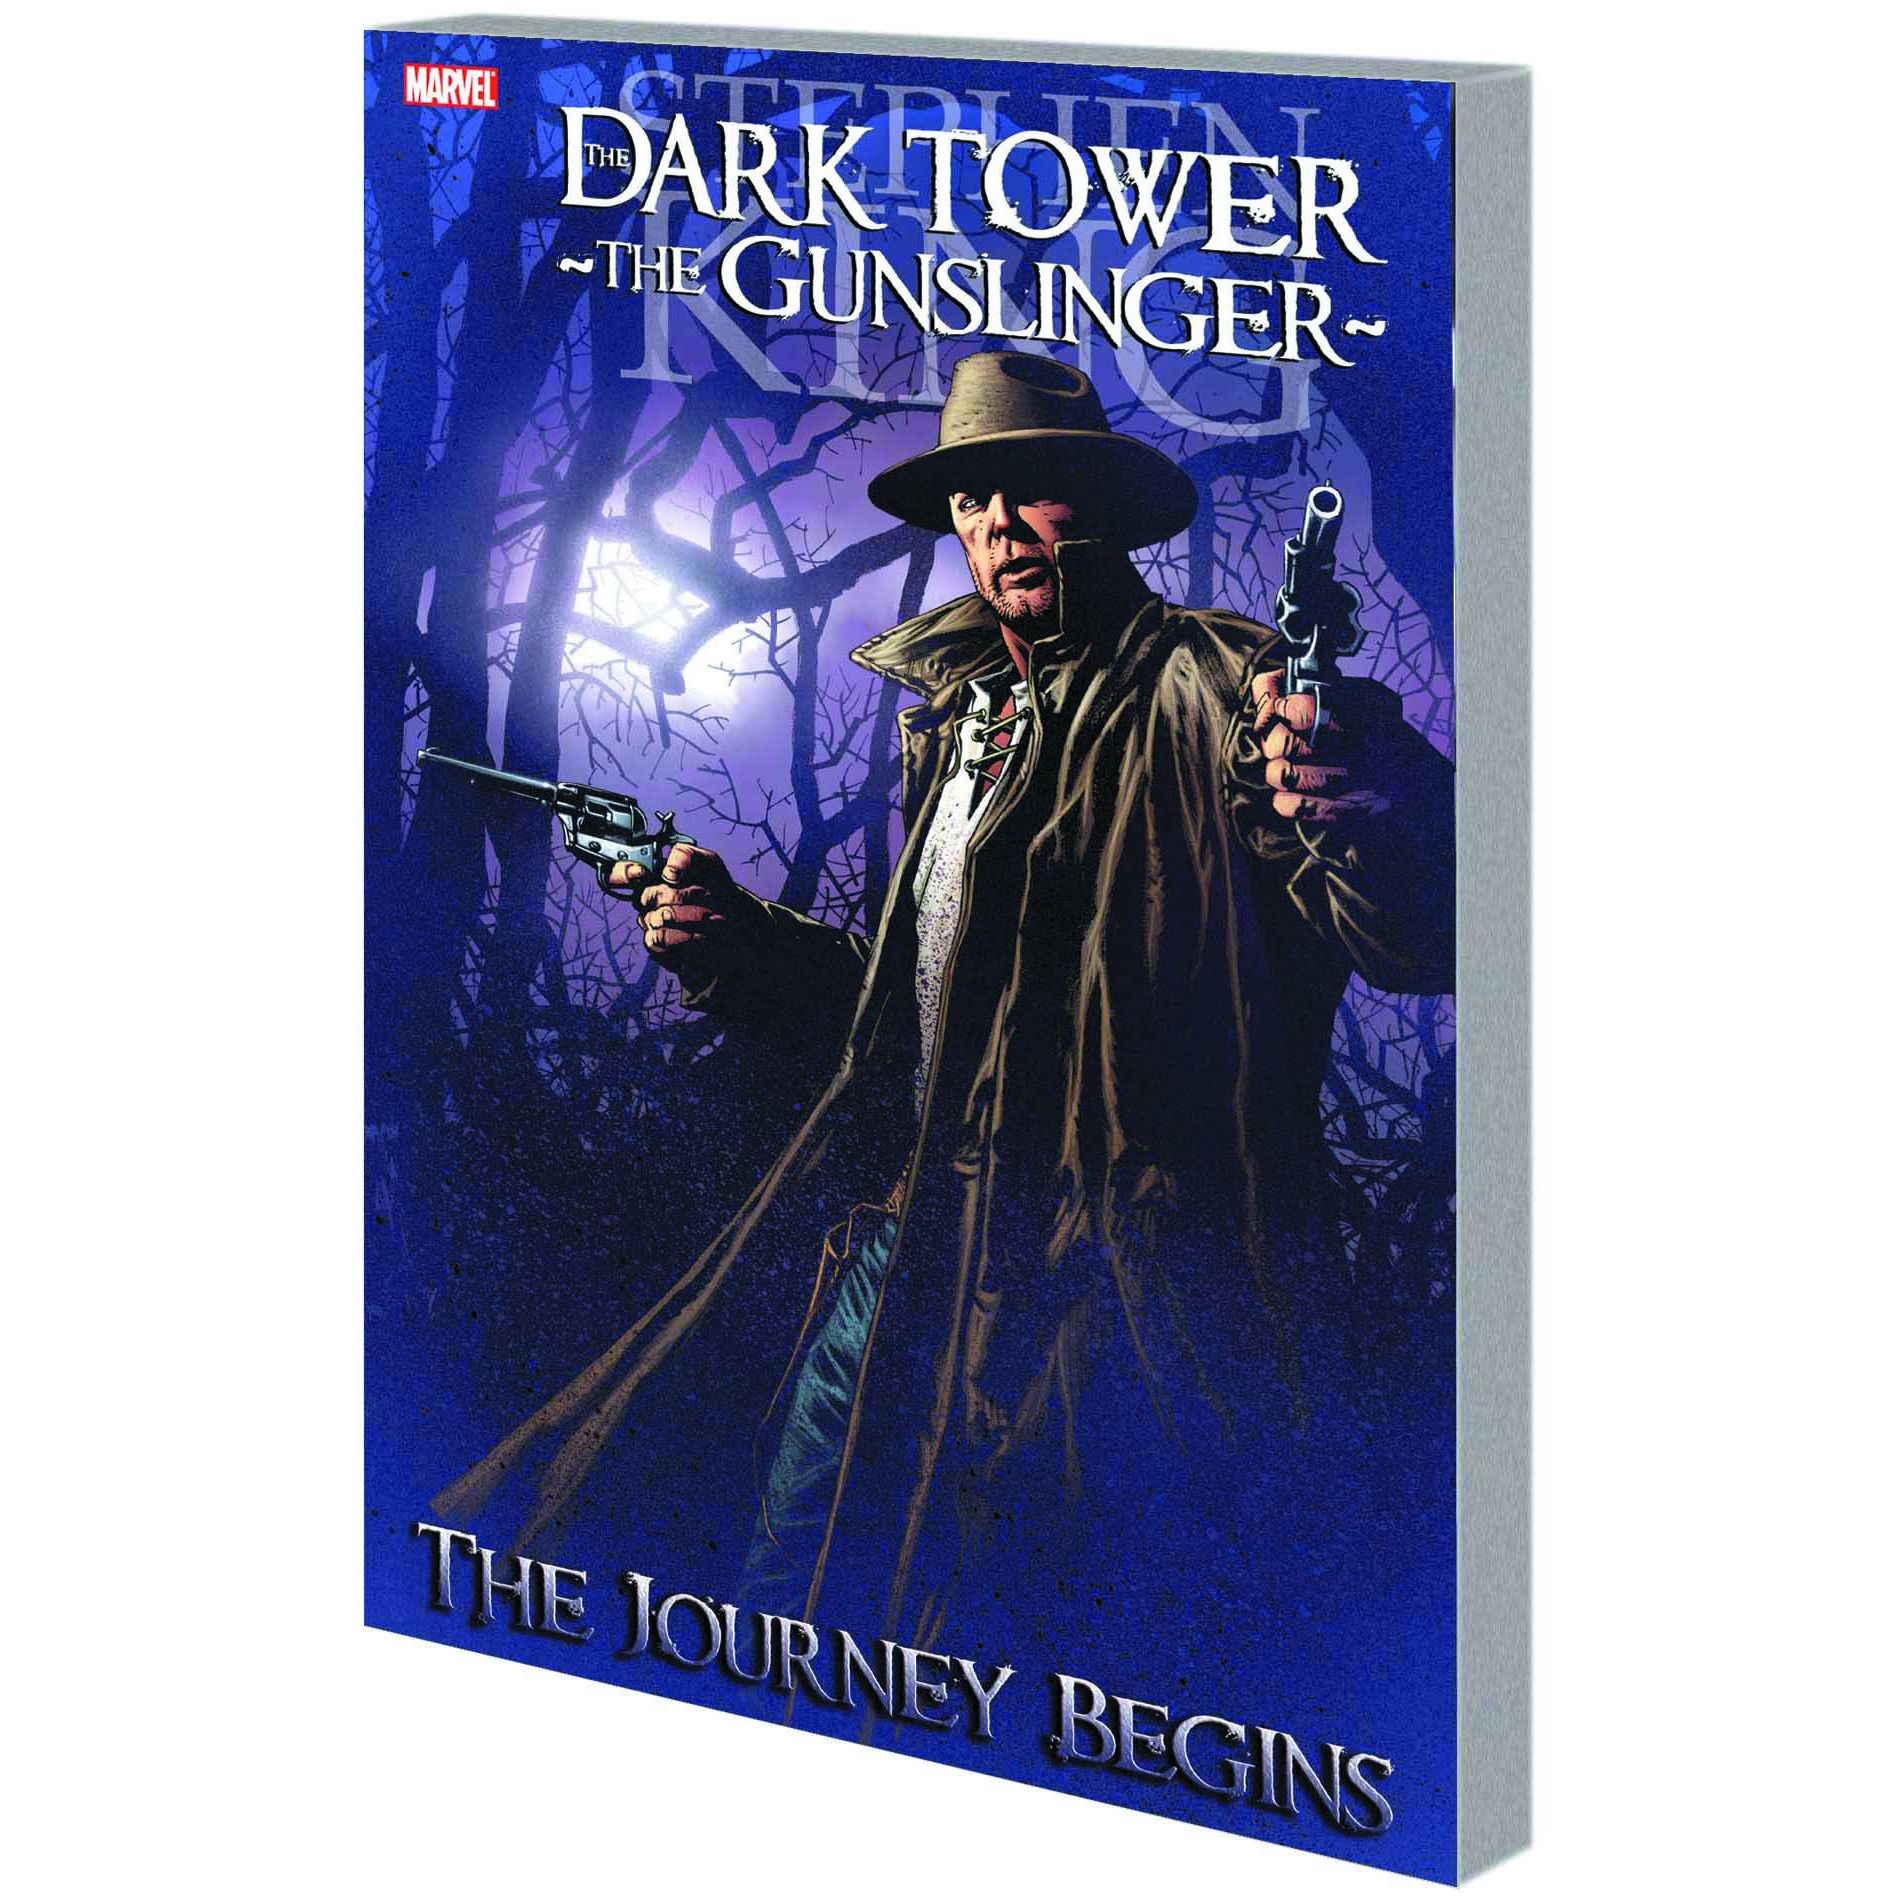 Dark Tower The Gunslinger TP Journey Begins Uncanny!